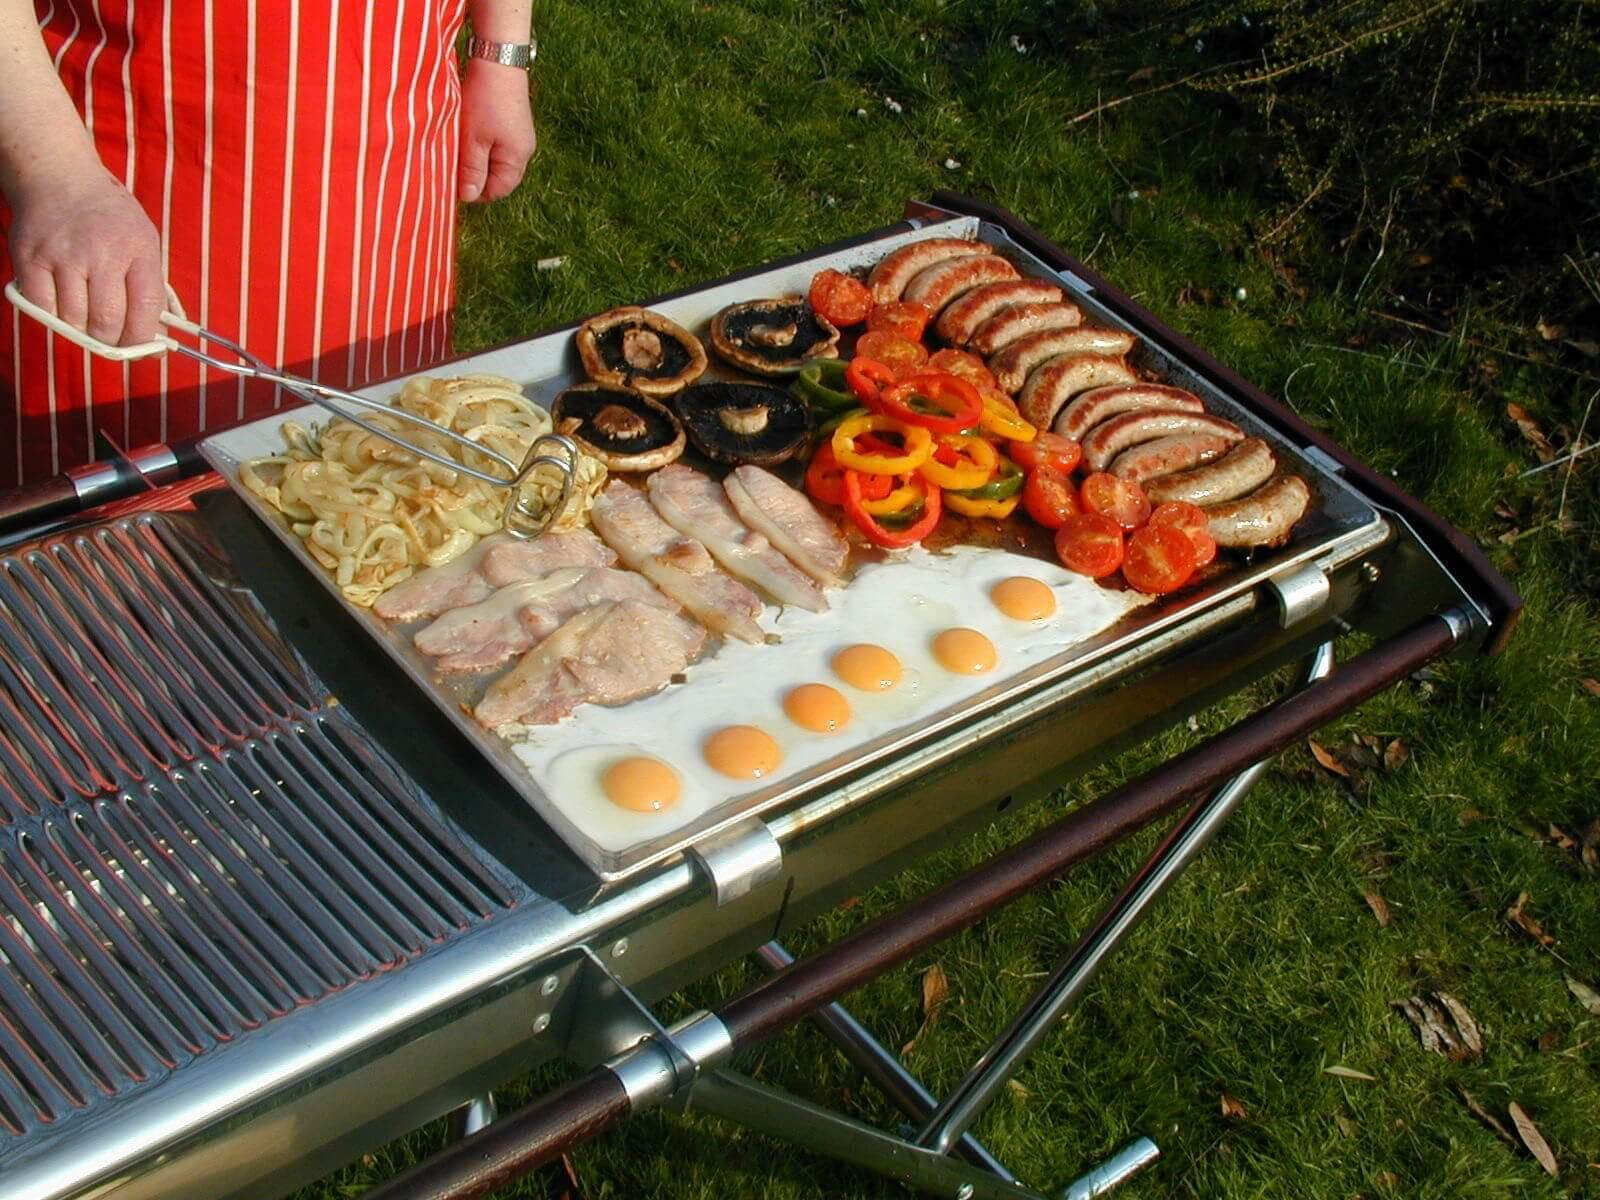 Flat Top Griddle Cinders BBQ Barbecue Catering Outdoor